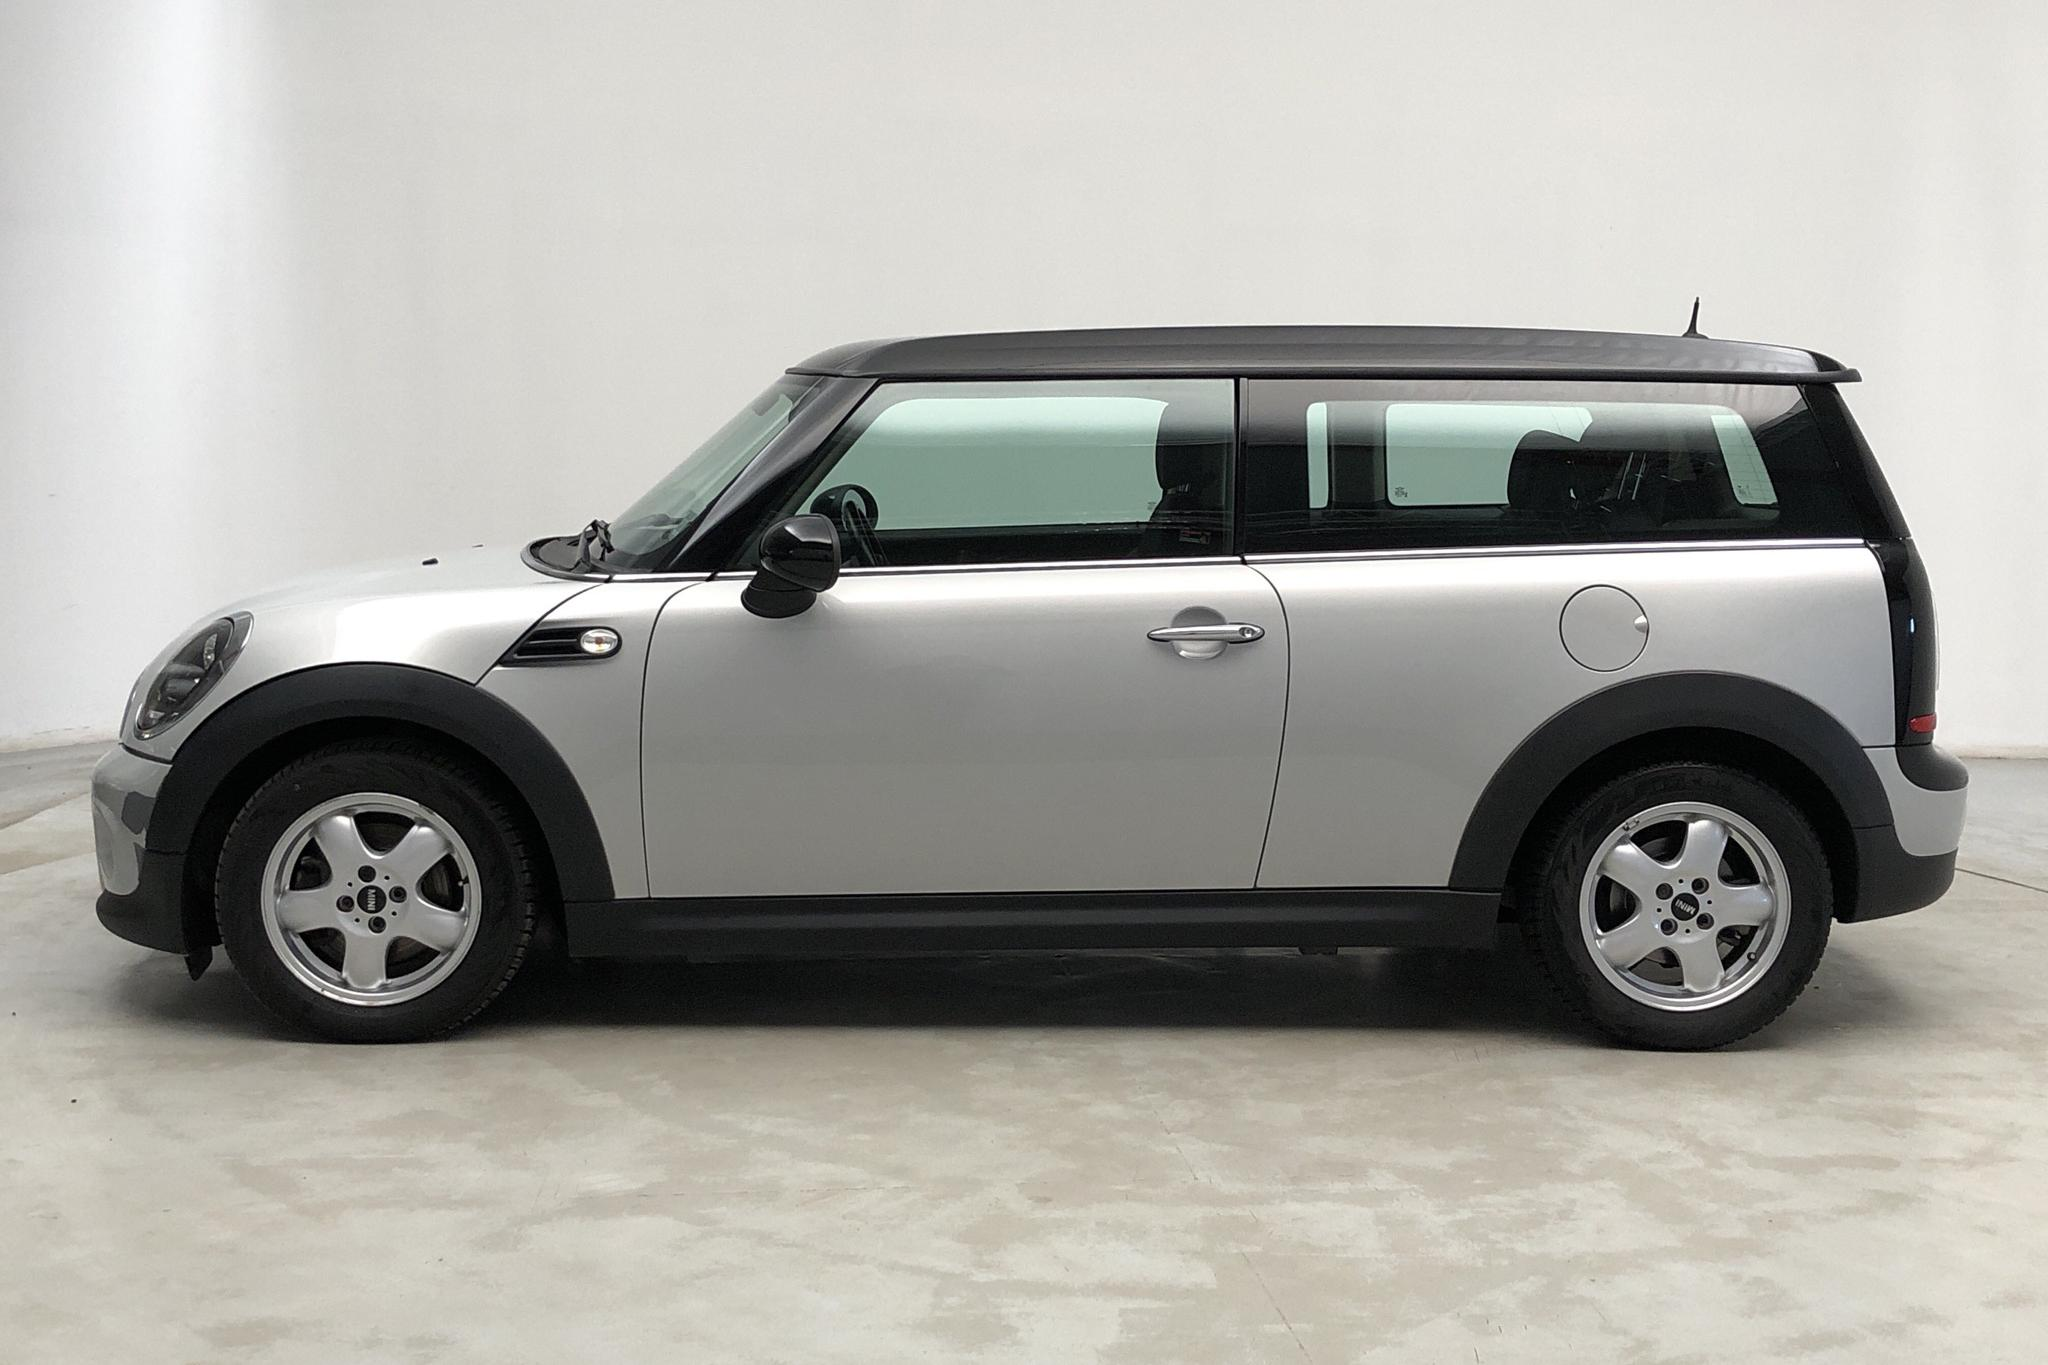 MINI Cooper D 1.6 Clubman (112hk) - 10 106 mil - Manuell - Light Green - 2010